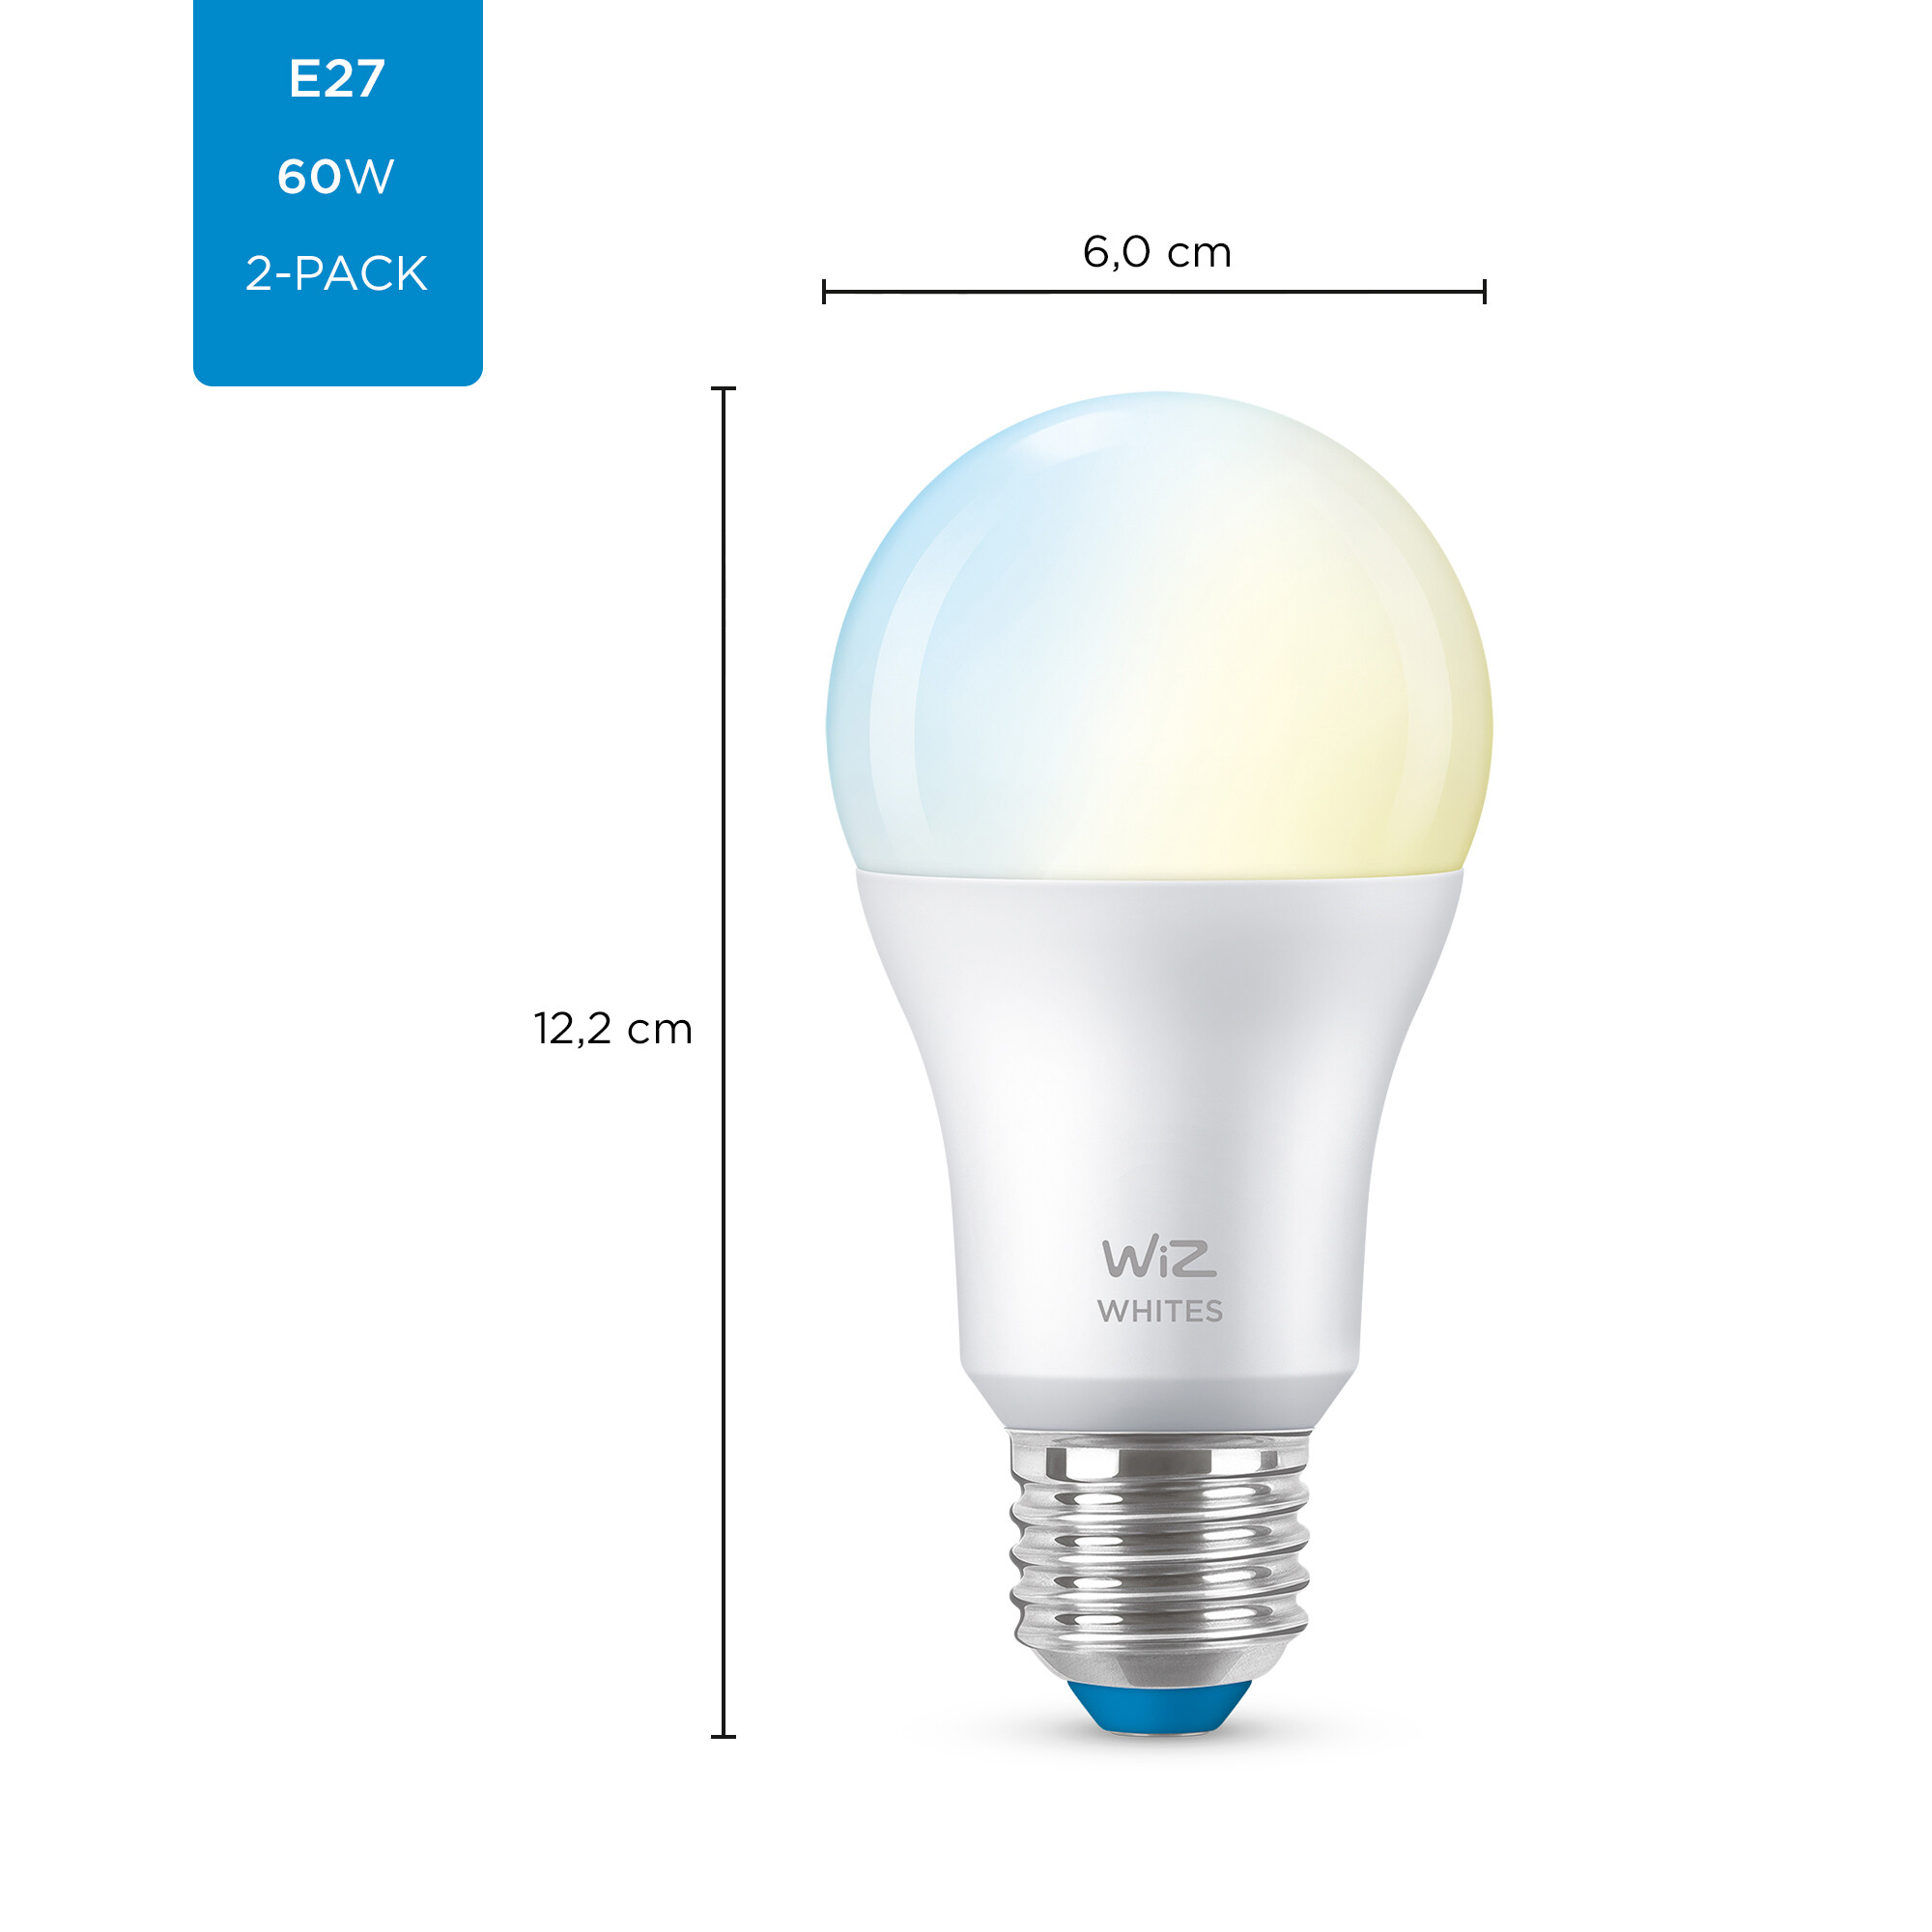 WiZ E27 60W 806lm 2700K Lamp Frosted